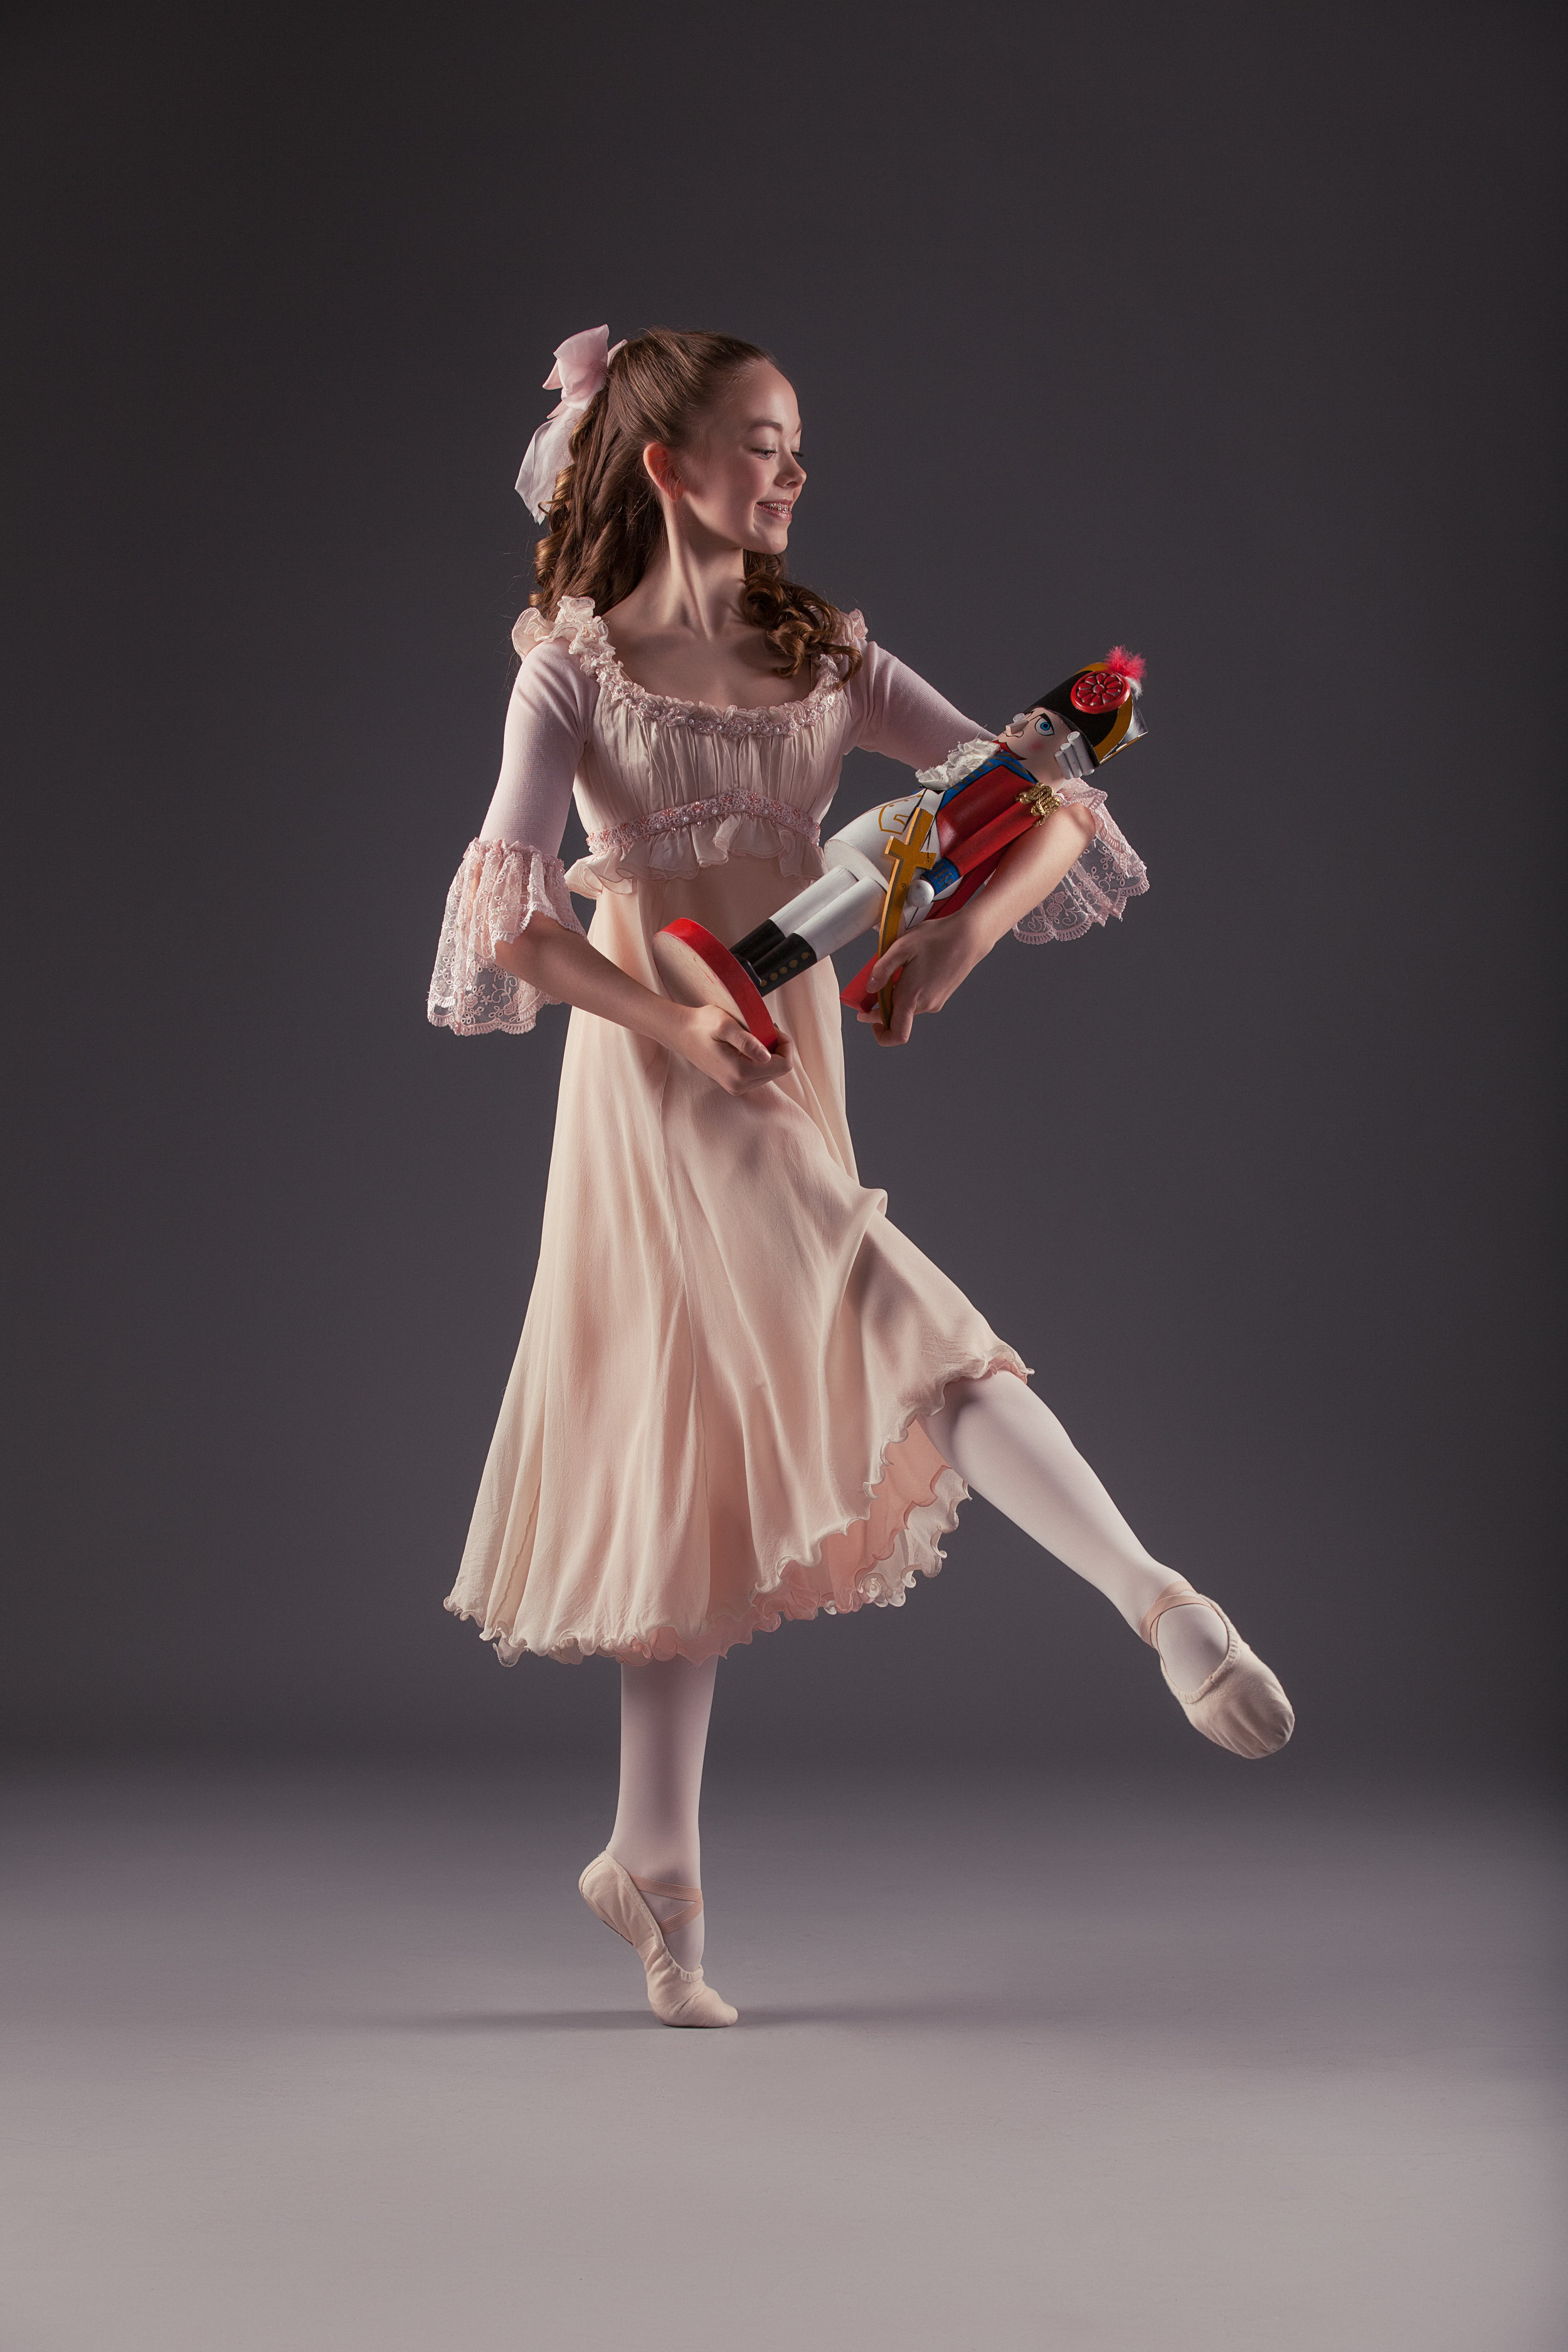 """Open House attendees will get to watch Ballet Arkansas' rehearsal for """"The Nutcracker"""""""